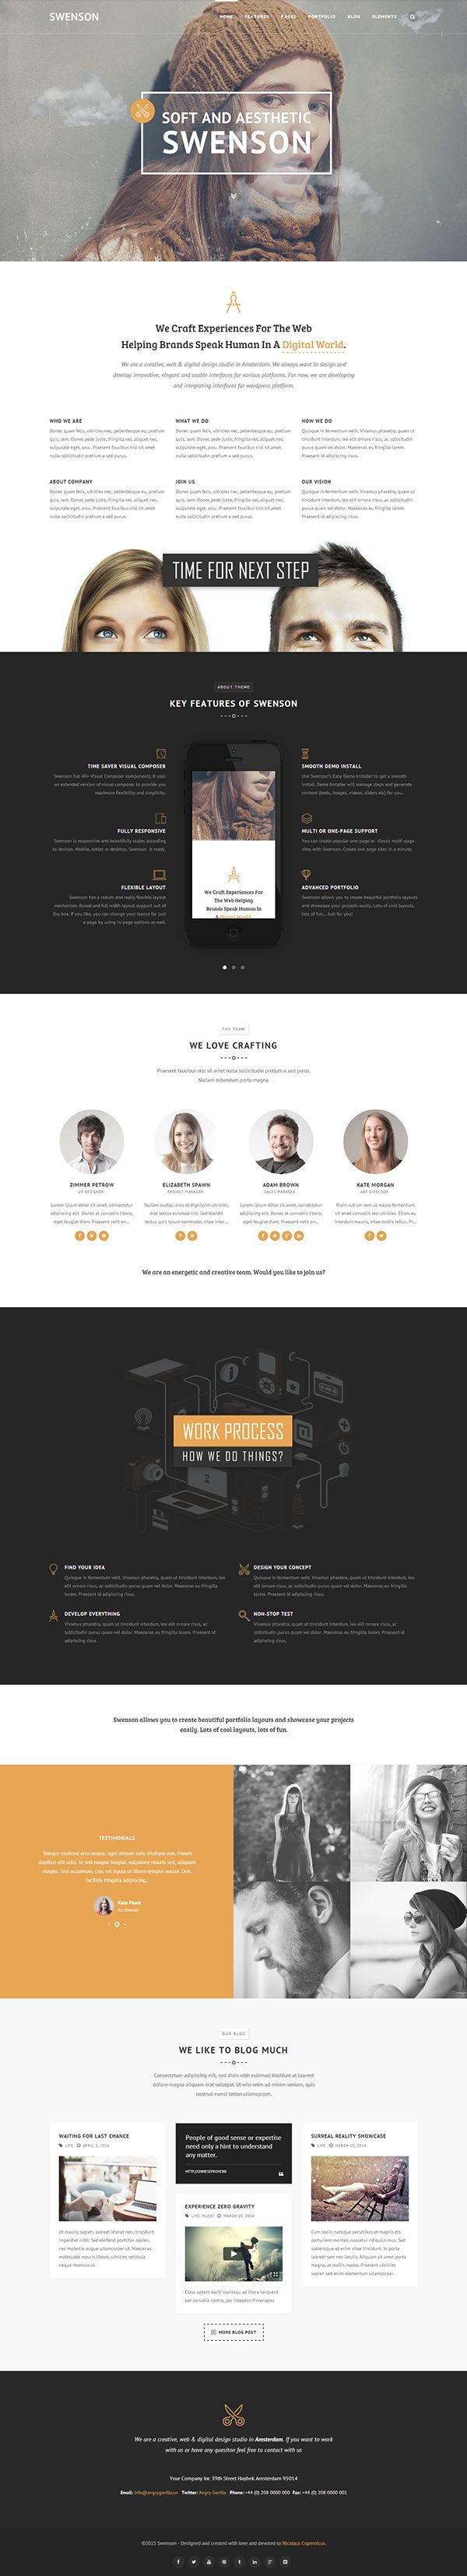 Swenson - Soft Creative Wordpress Theme on Behance